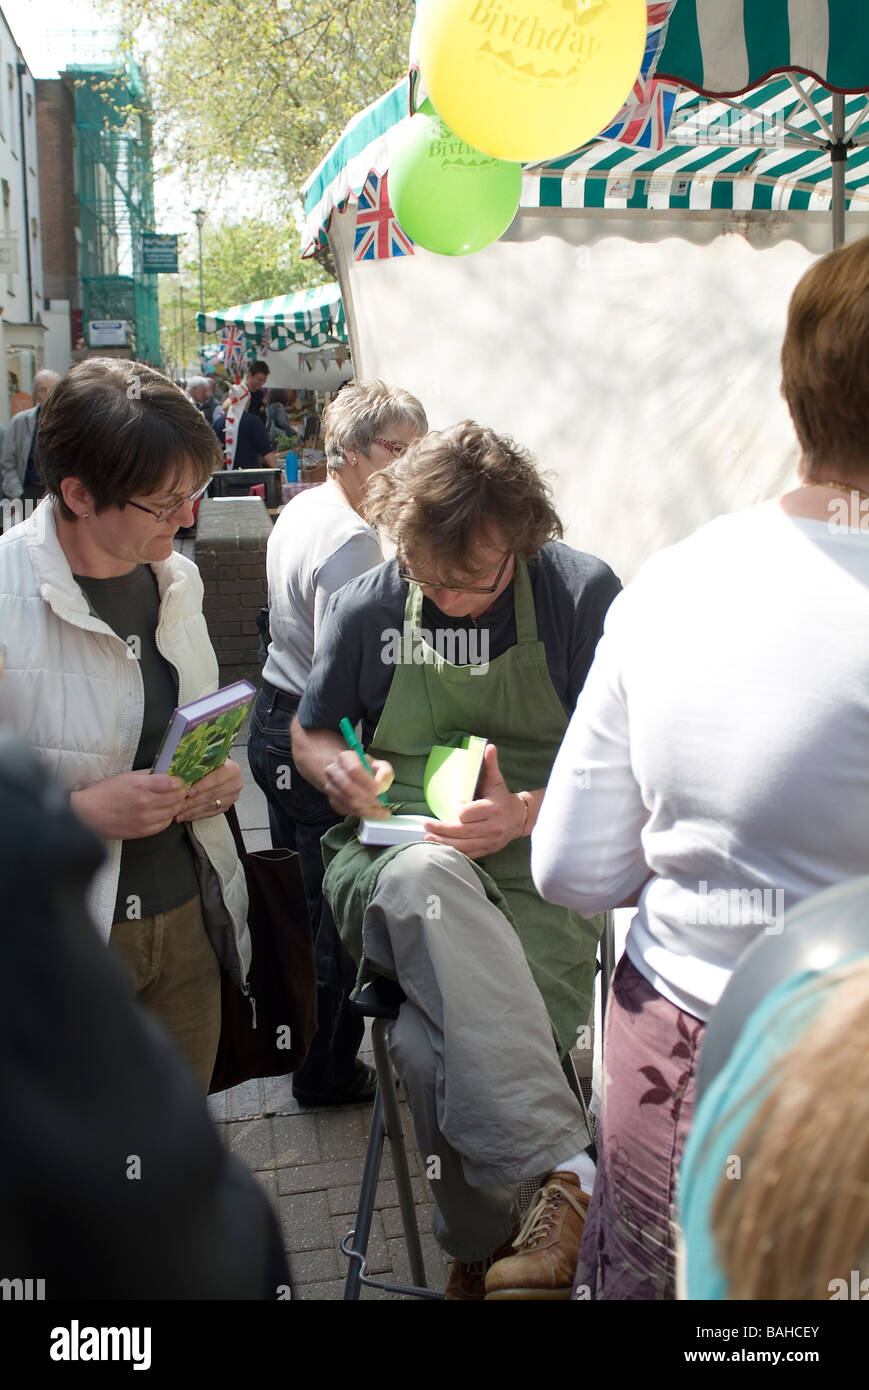 Hugh Fearnley Whittingstall at Taunton vale farmers market - Stock Image